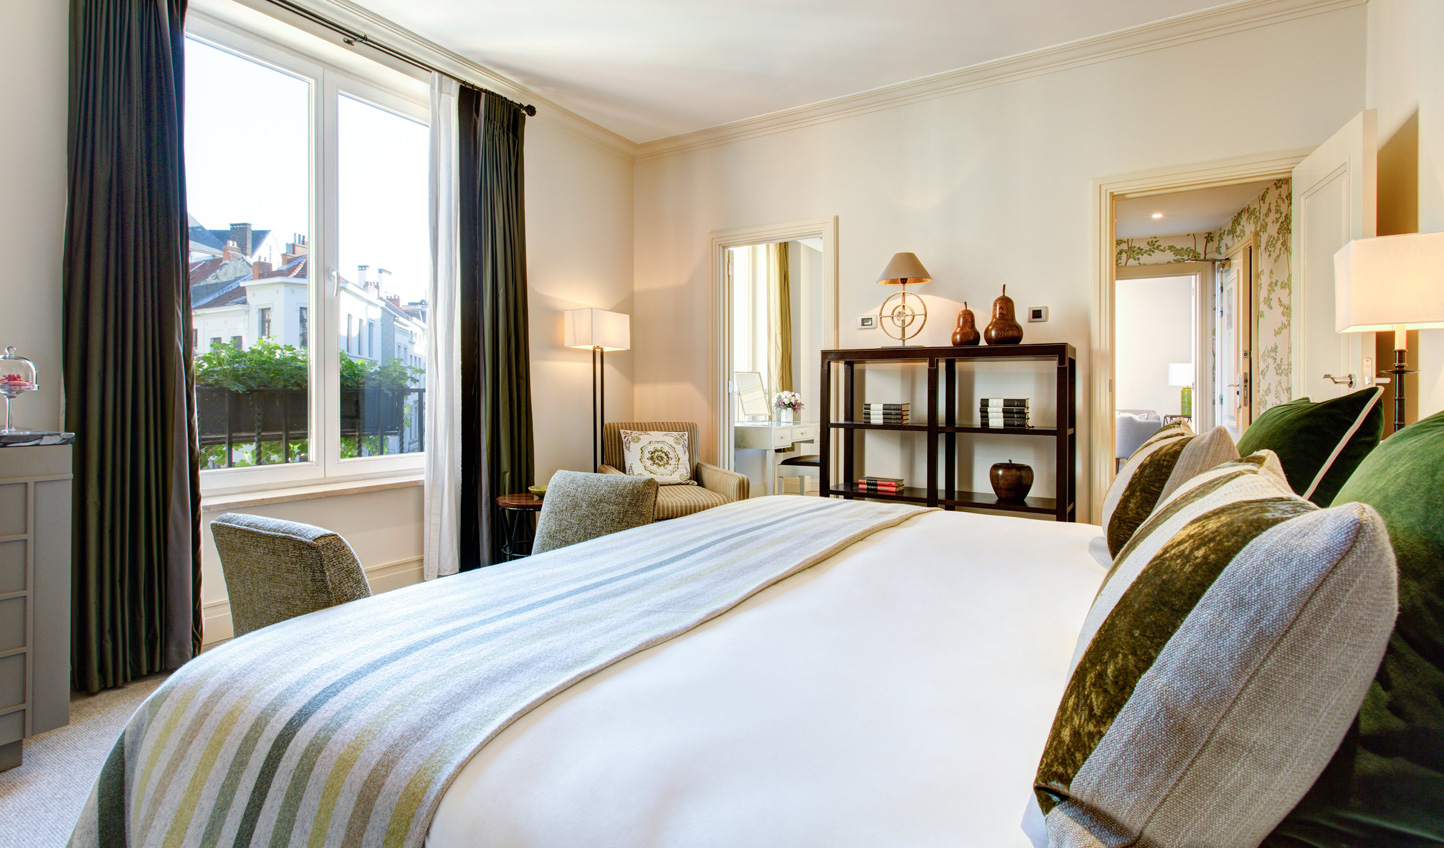 Luxury Hotels in Brussels